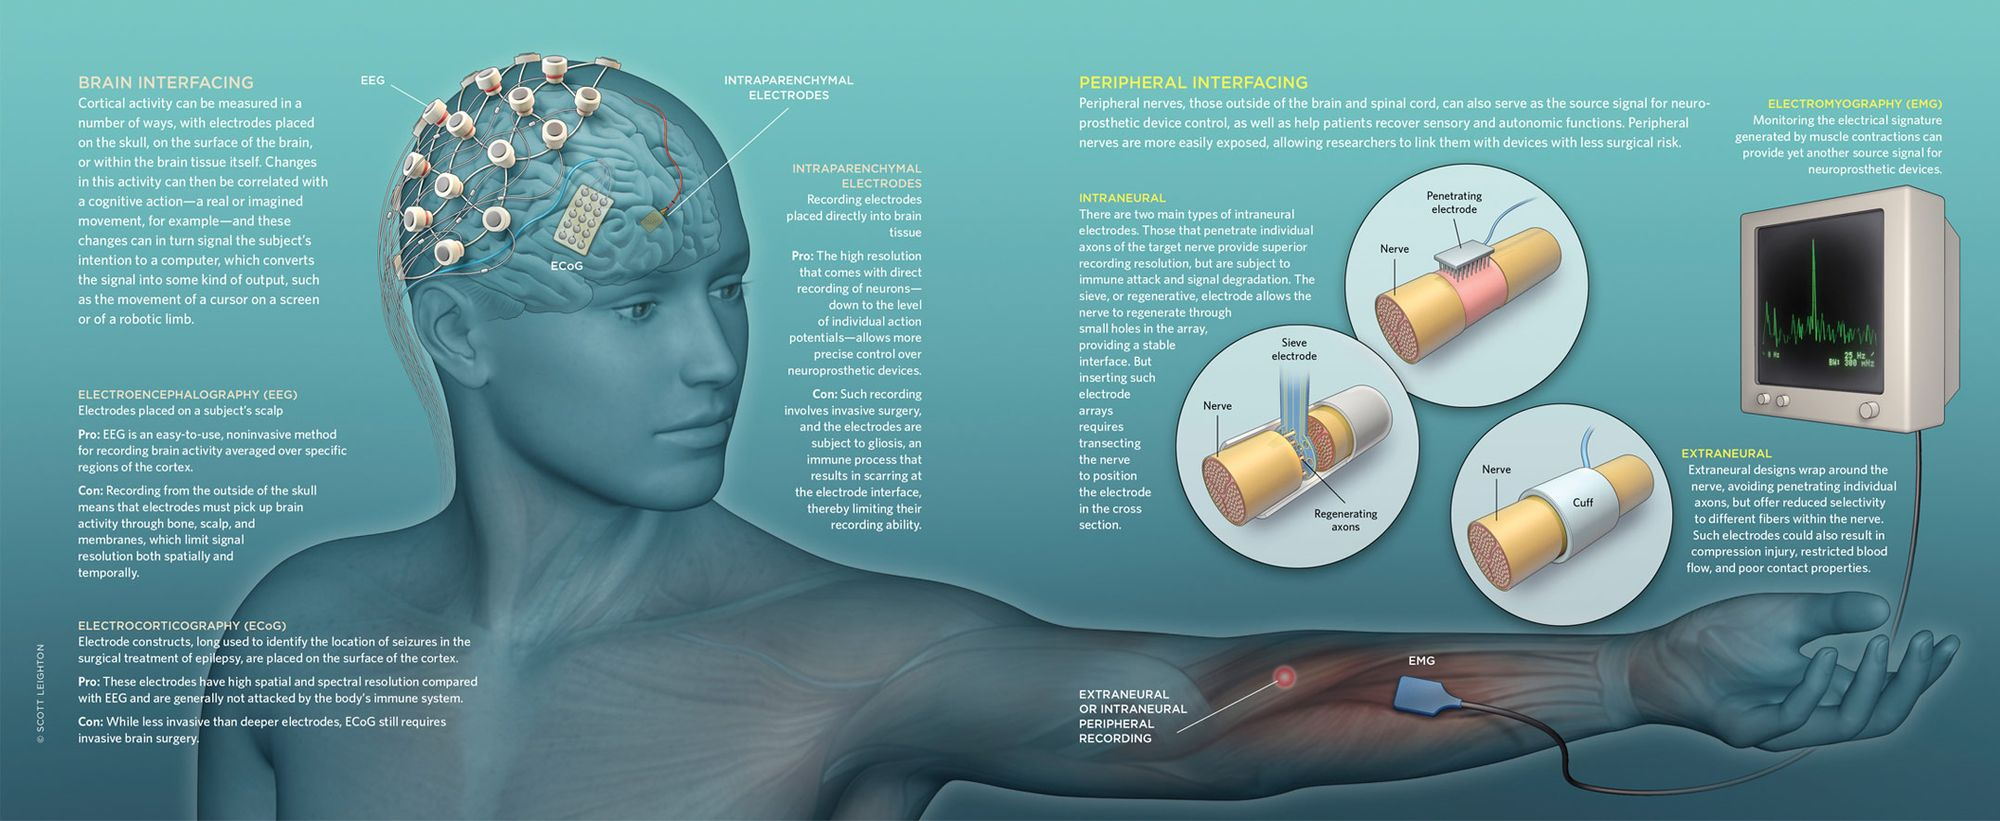 Neuroprosthetics - Intelligent Spinal Interface